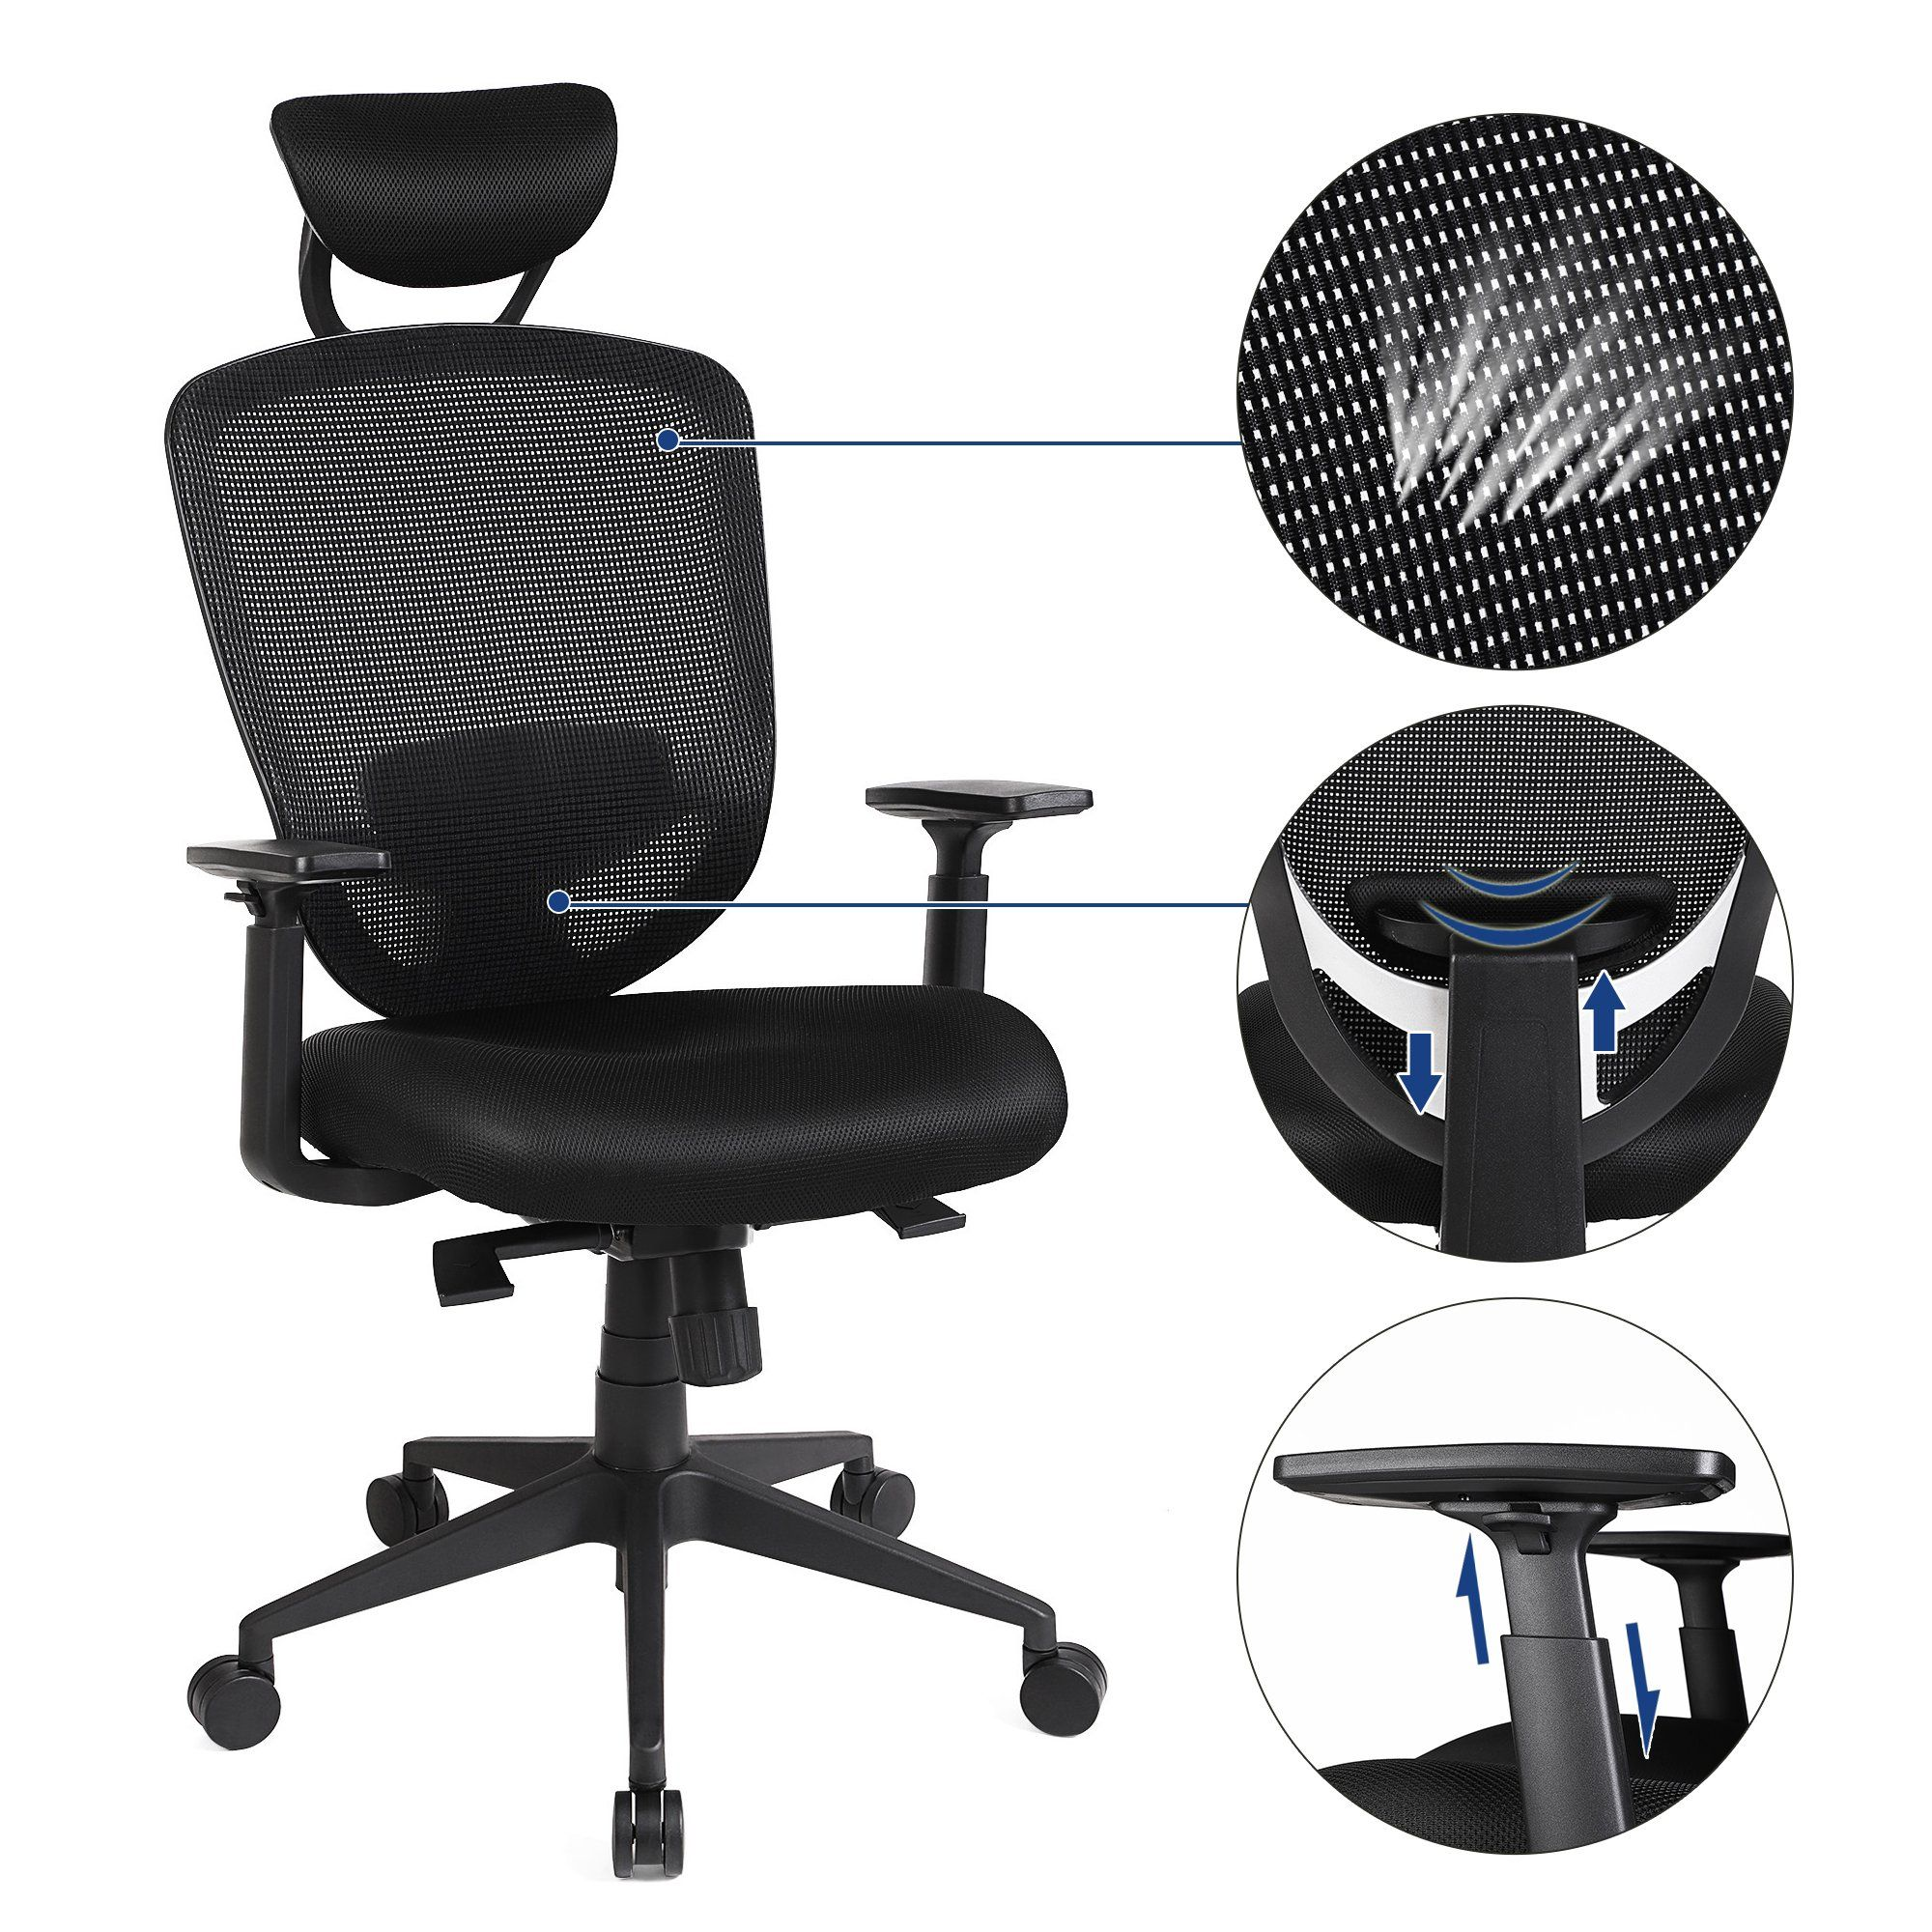 Songmics Office Chair With Ergonomic High Back Support Swivel Mesh Chair With Adjustable Headrest Black Uobn88bk Office Chair Mesh Chair Office Chair Makeover